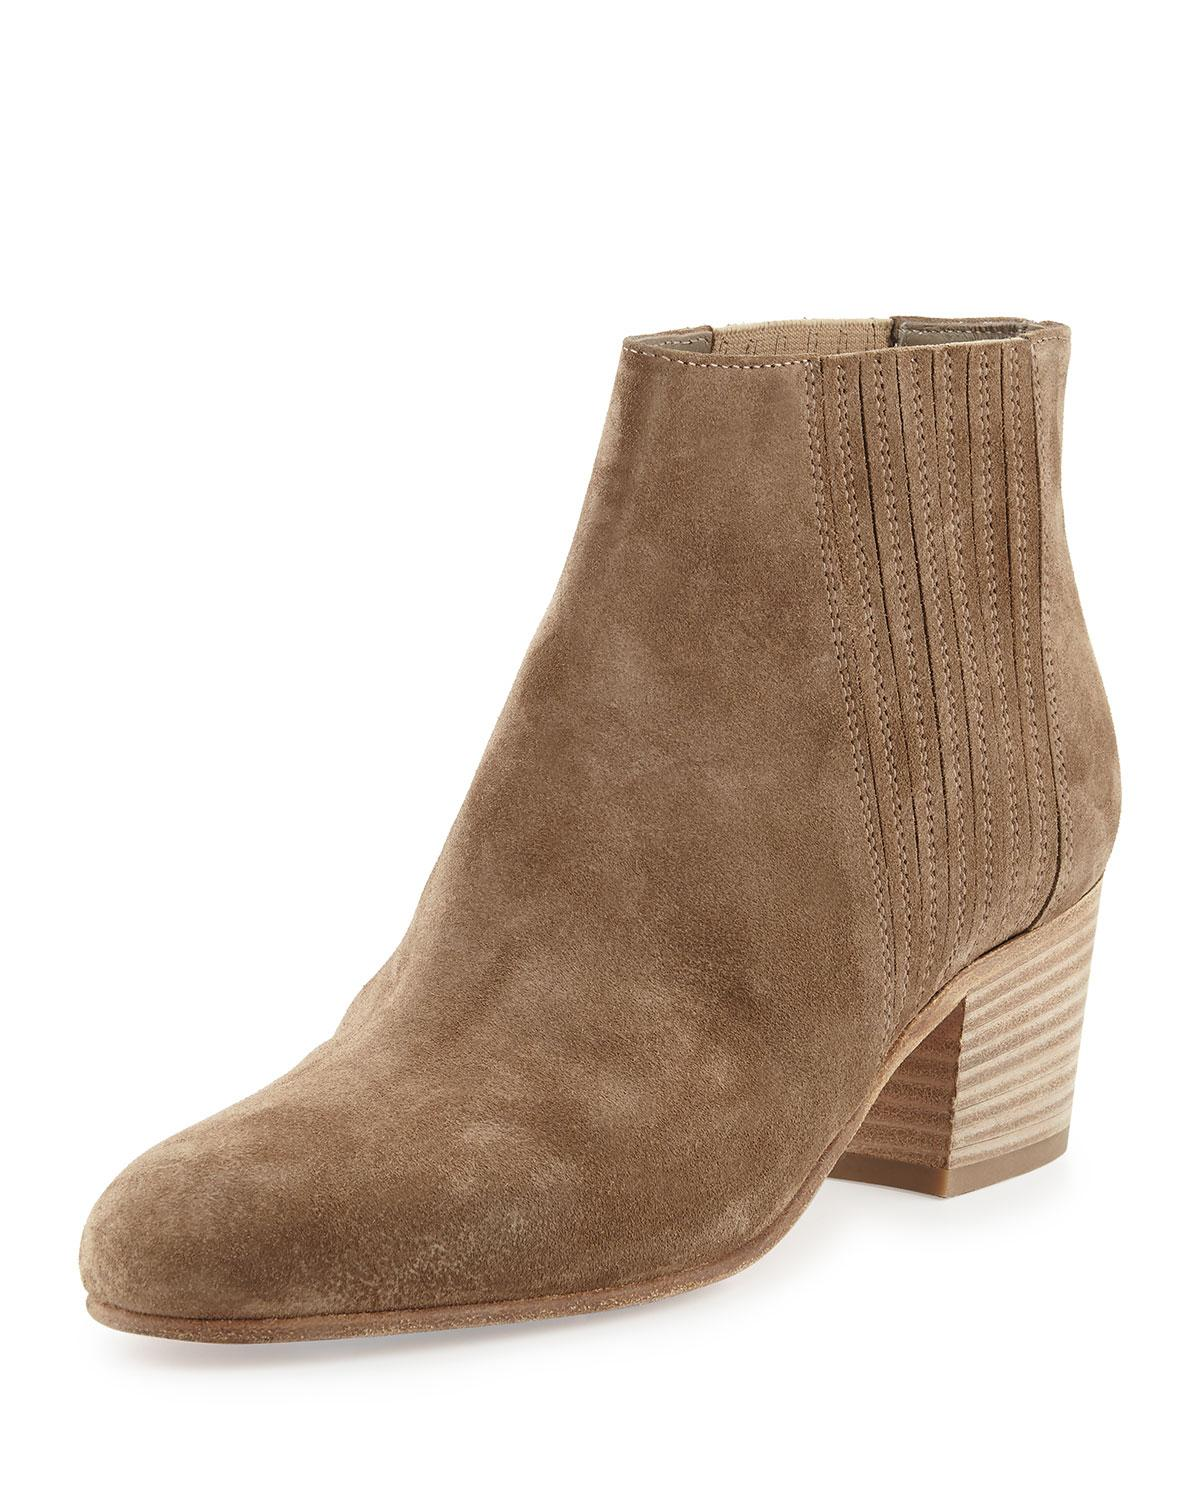 Vince Suede Ankle Boots discount low price 2014 newest best place to buy sale top quality cheap sale 2014 newest 0Seuvg9gj